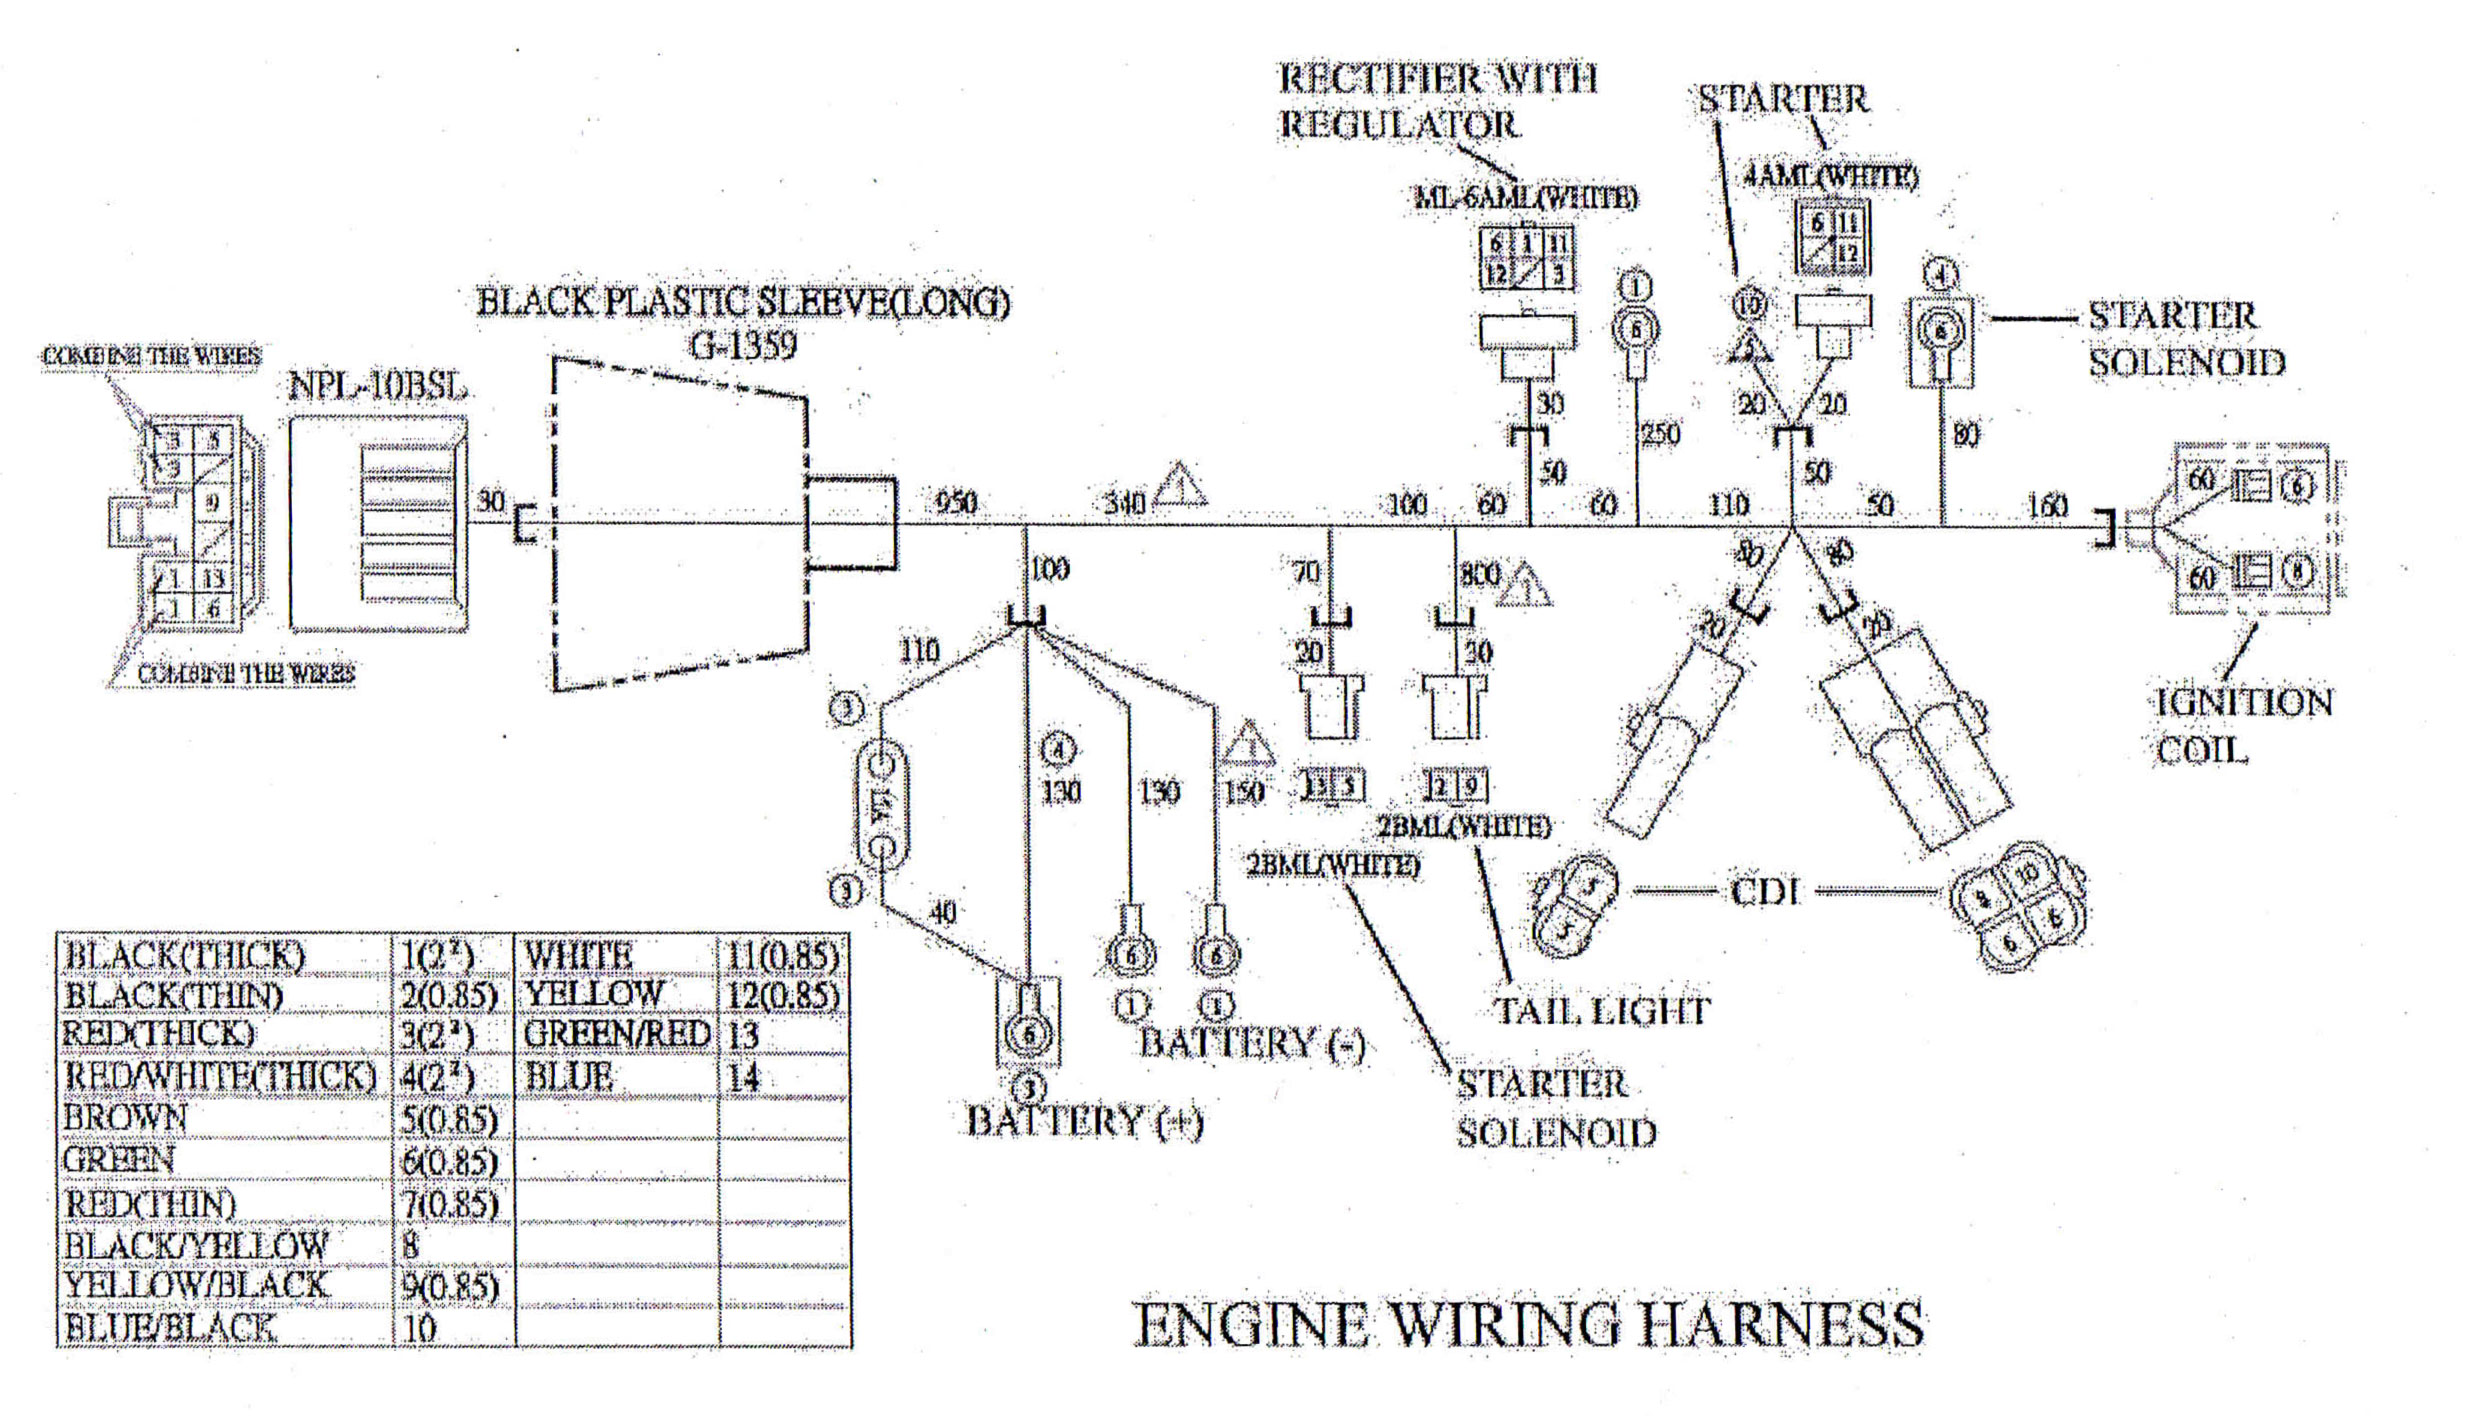 Wiring Diagram 2002 Honda Gx340 Engine Parts Gx610 Expert Schematics Schematic Diagrams 18hp Ignition Gx620 Gx200